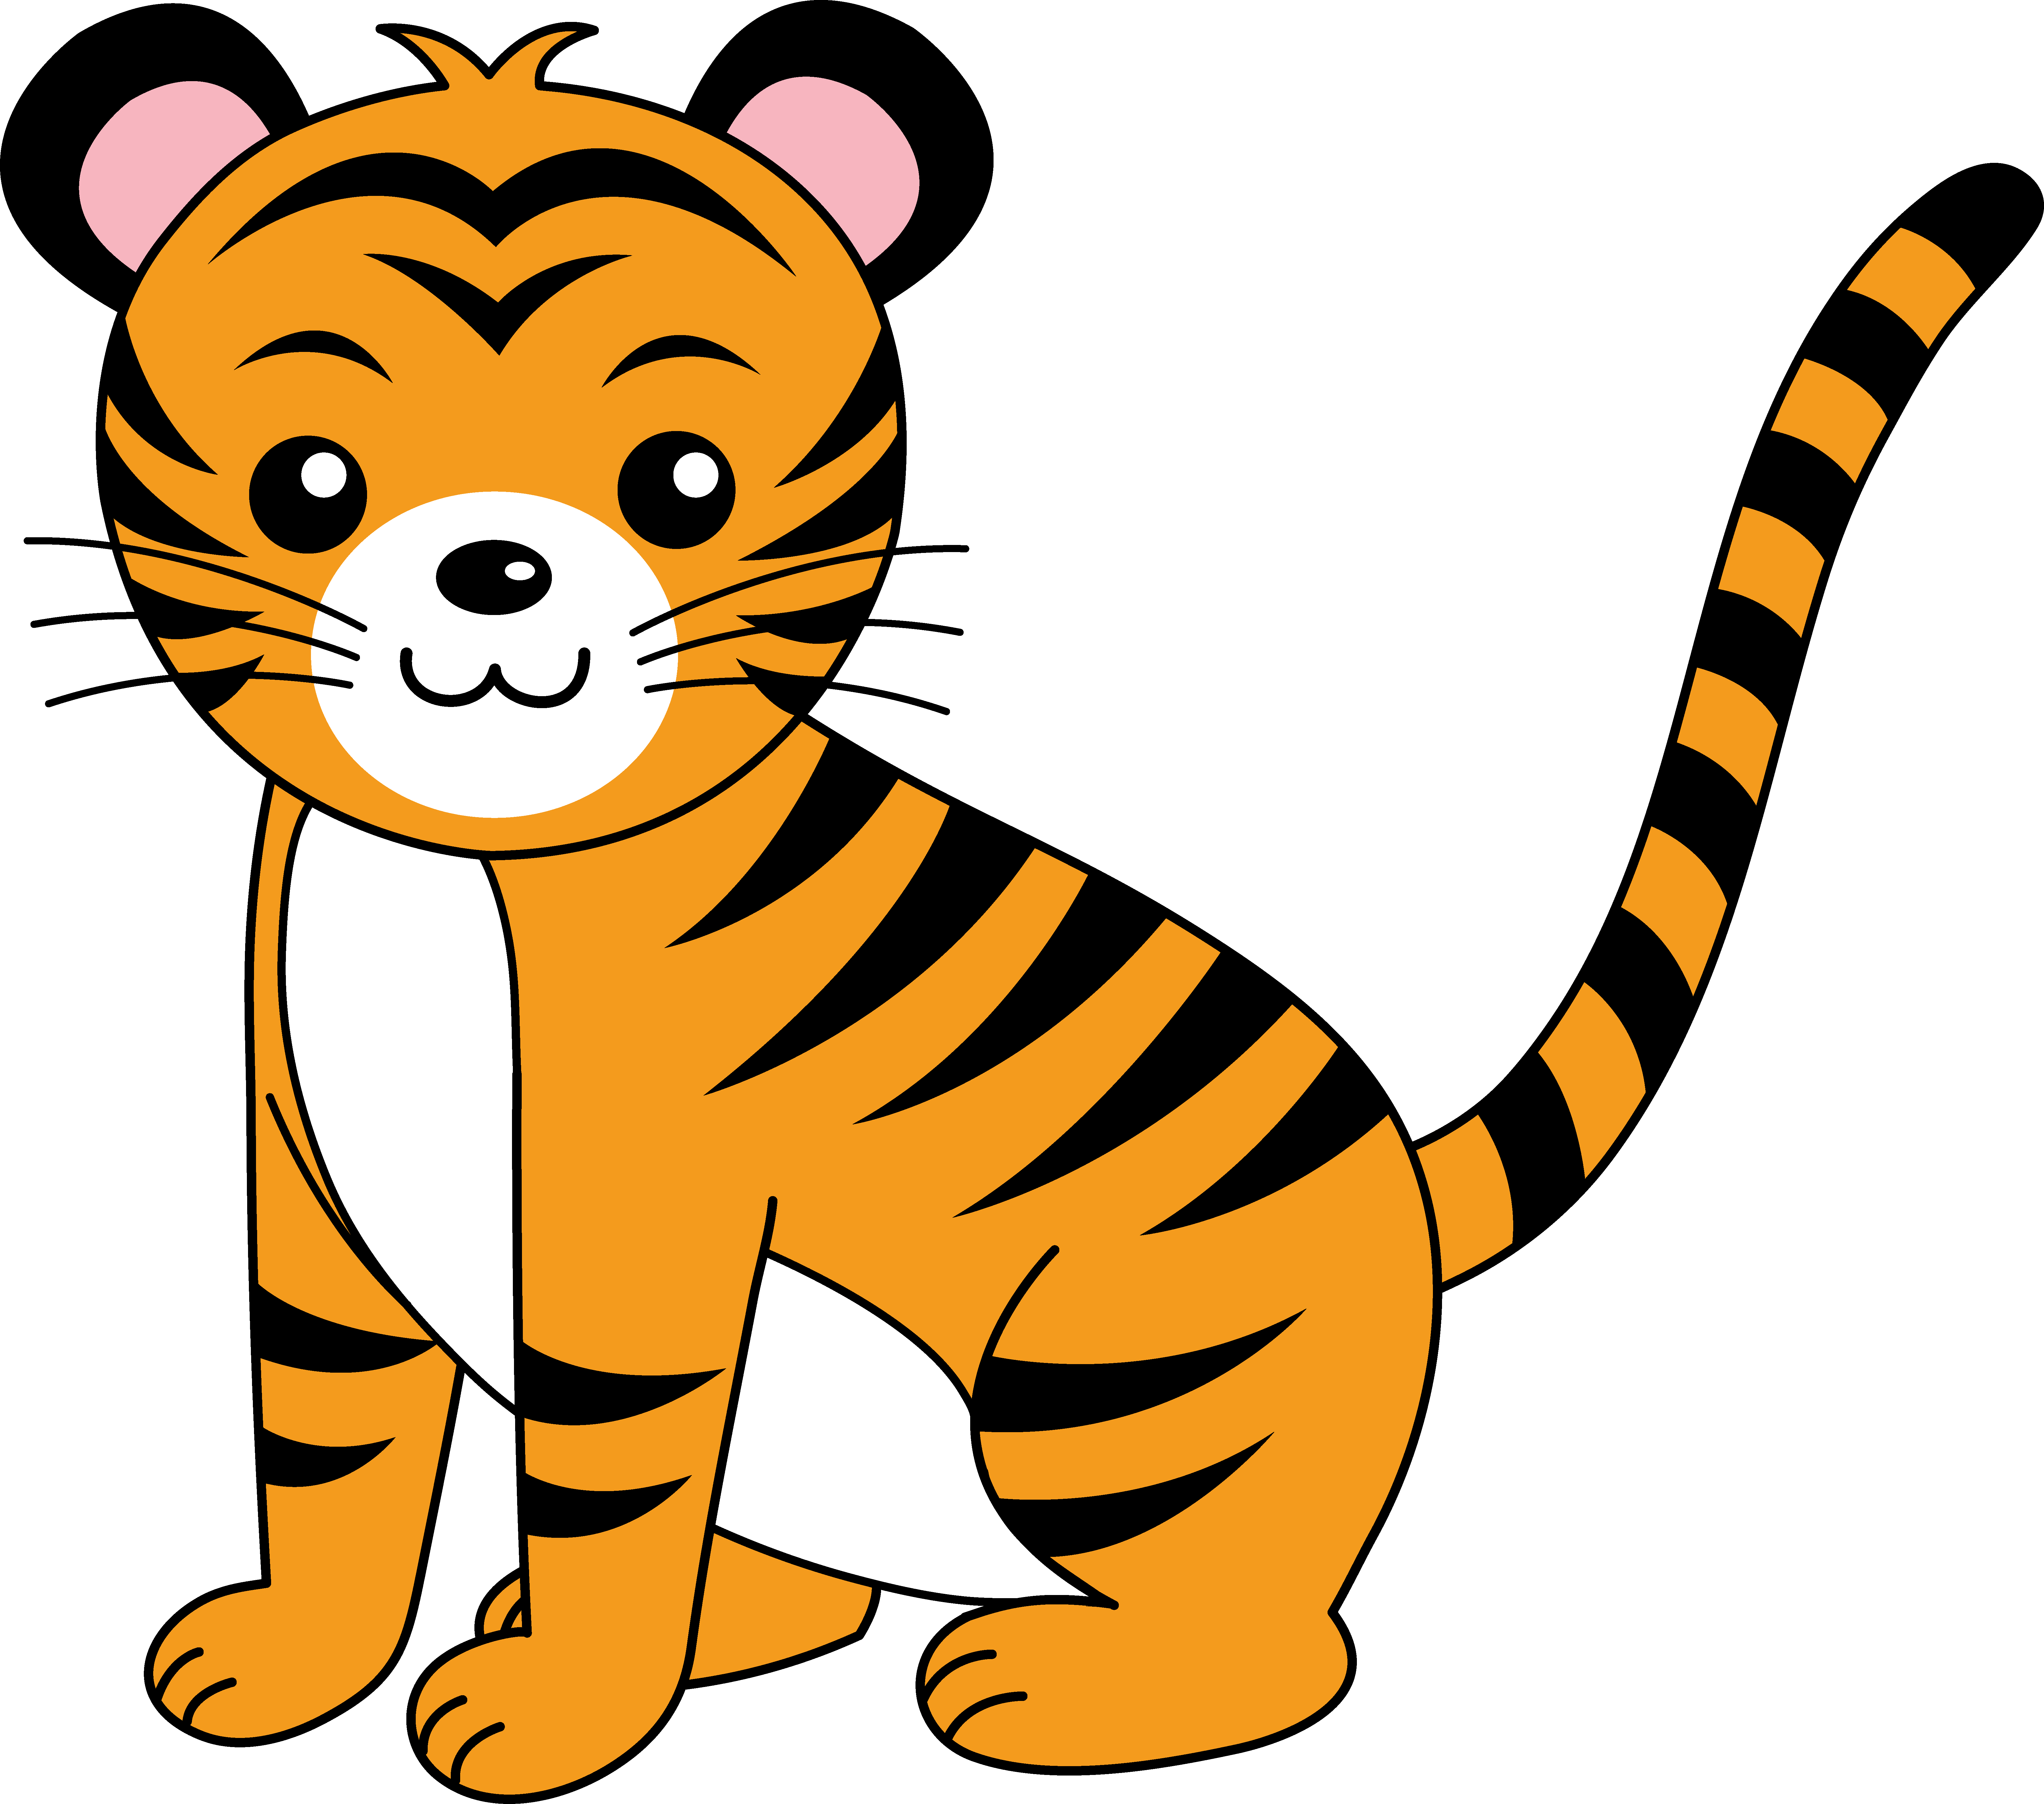 adorable clipart free free clip art kids pinterest clip art rh pinterest com tiger clipart free black and white tiger paw clipart free